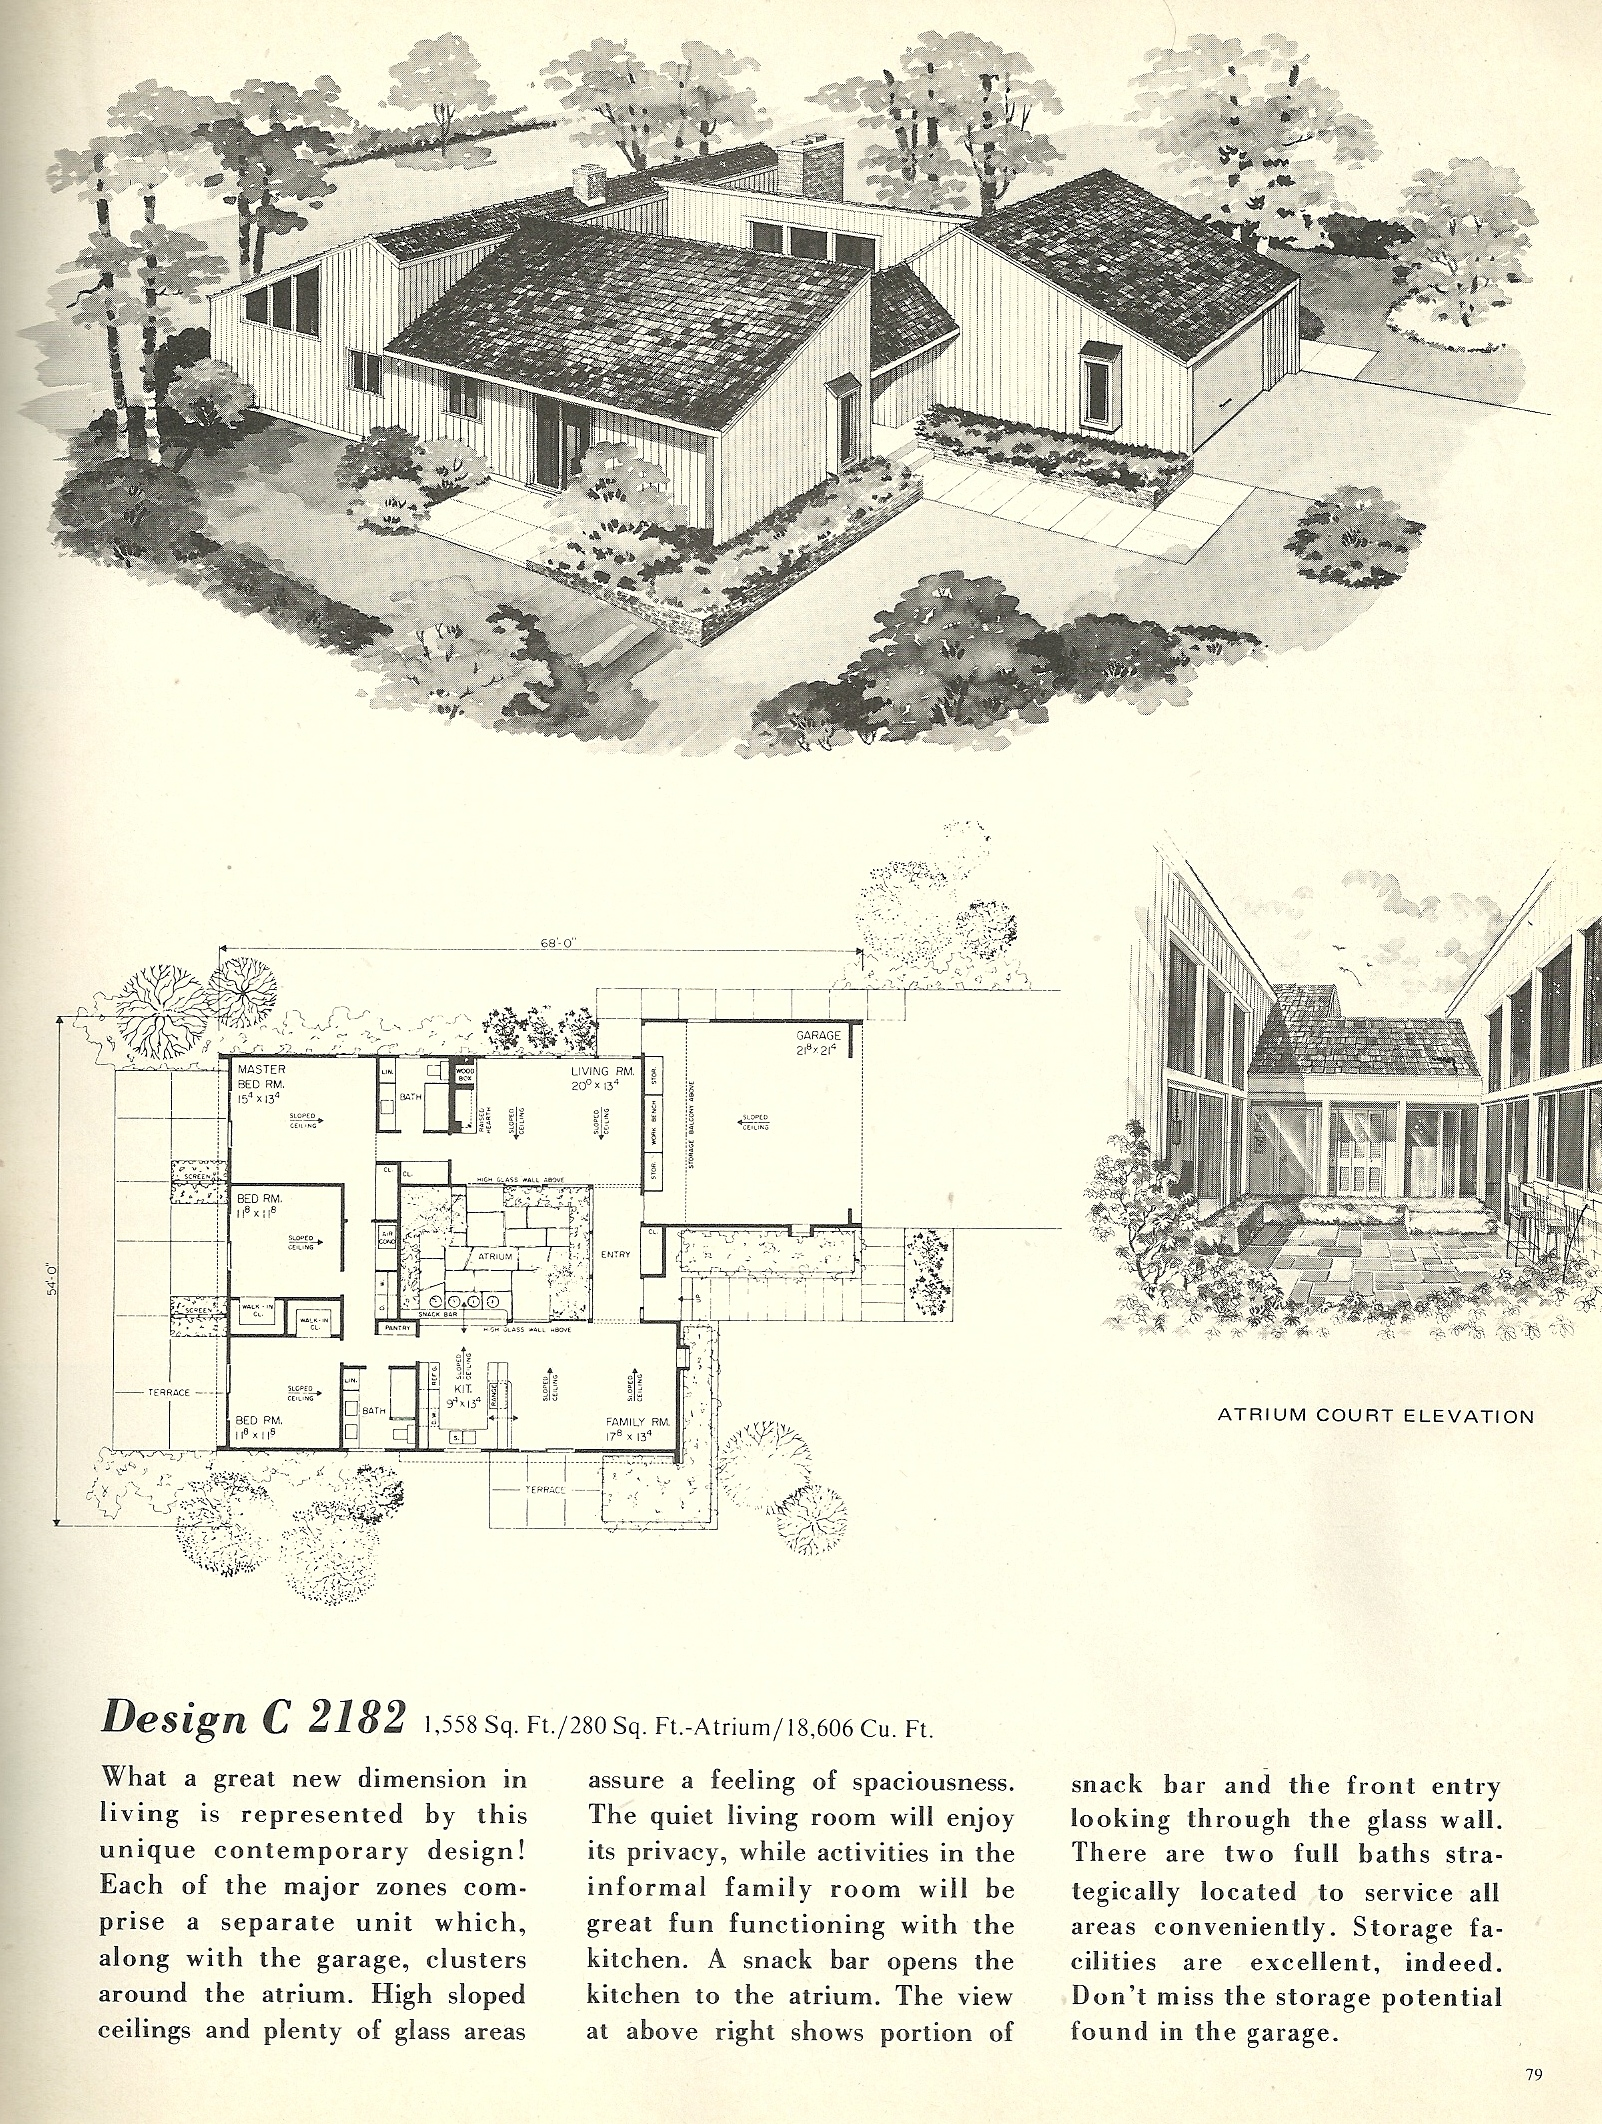 Vintage House Plans 2182 Antique Alter Ego